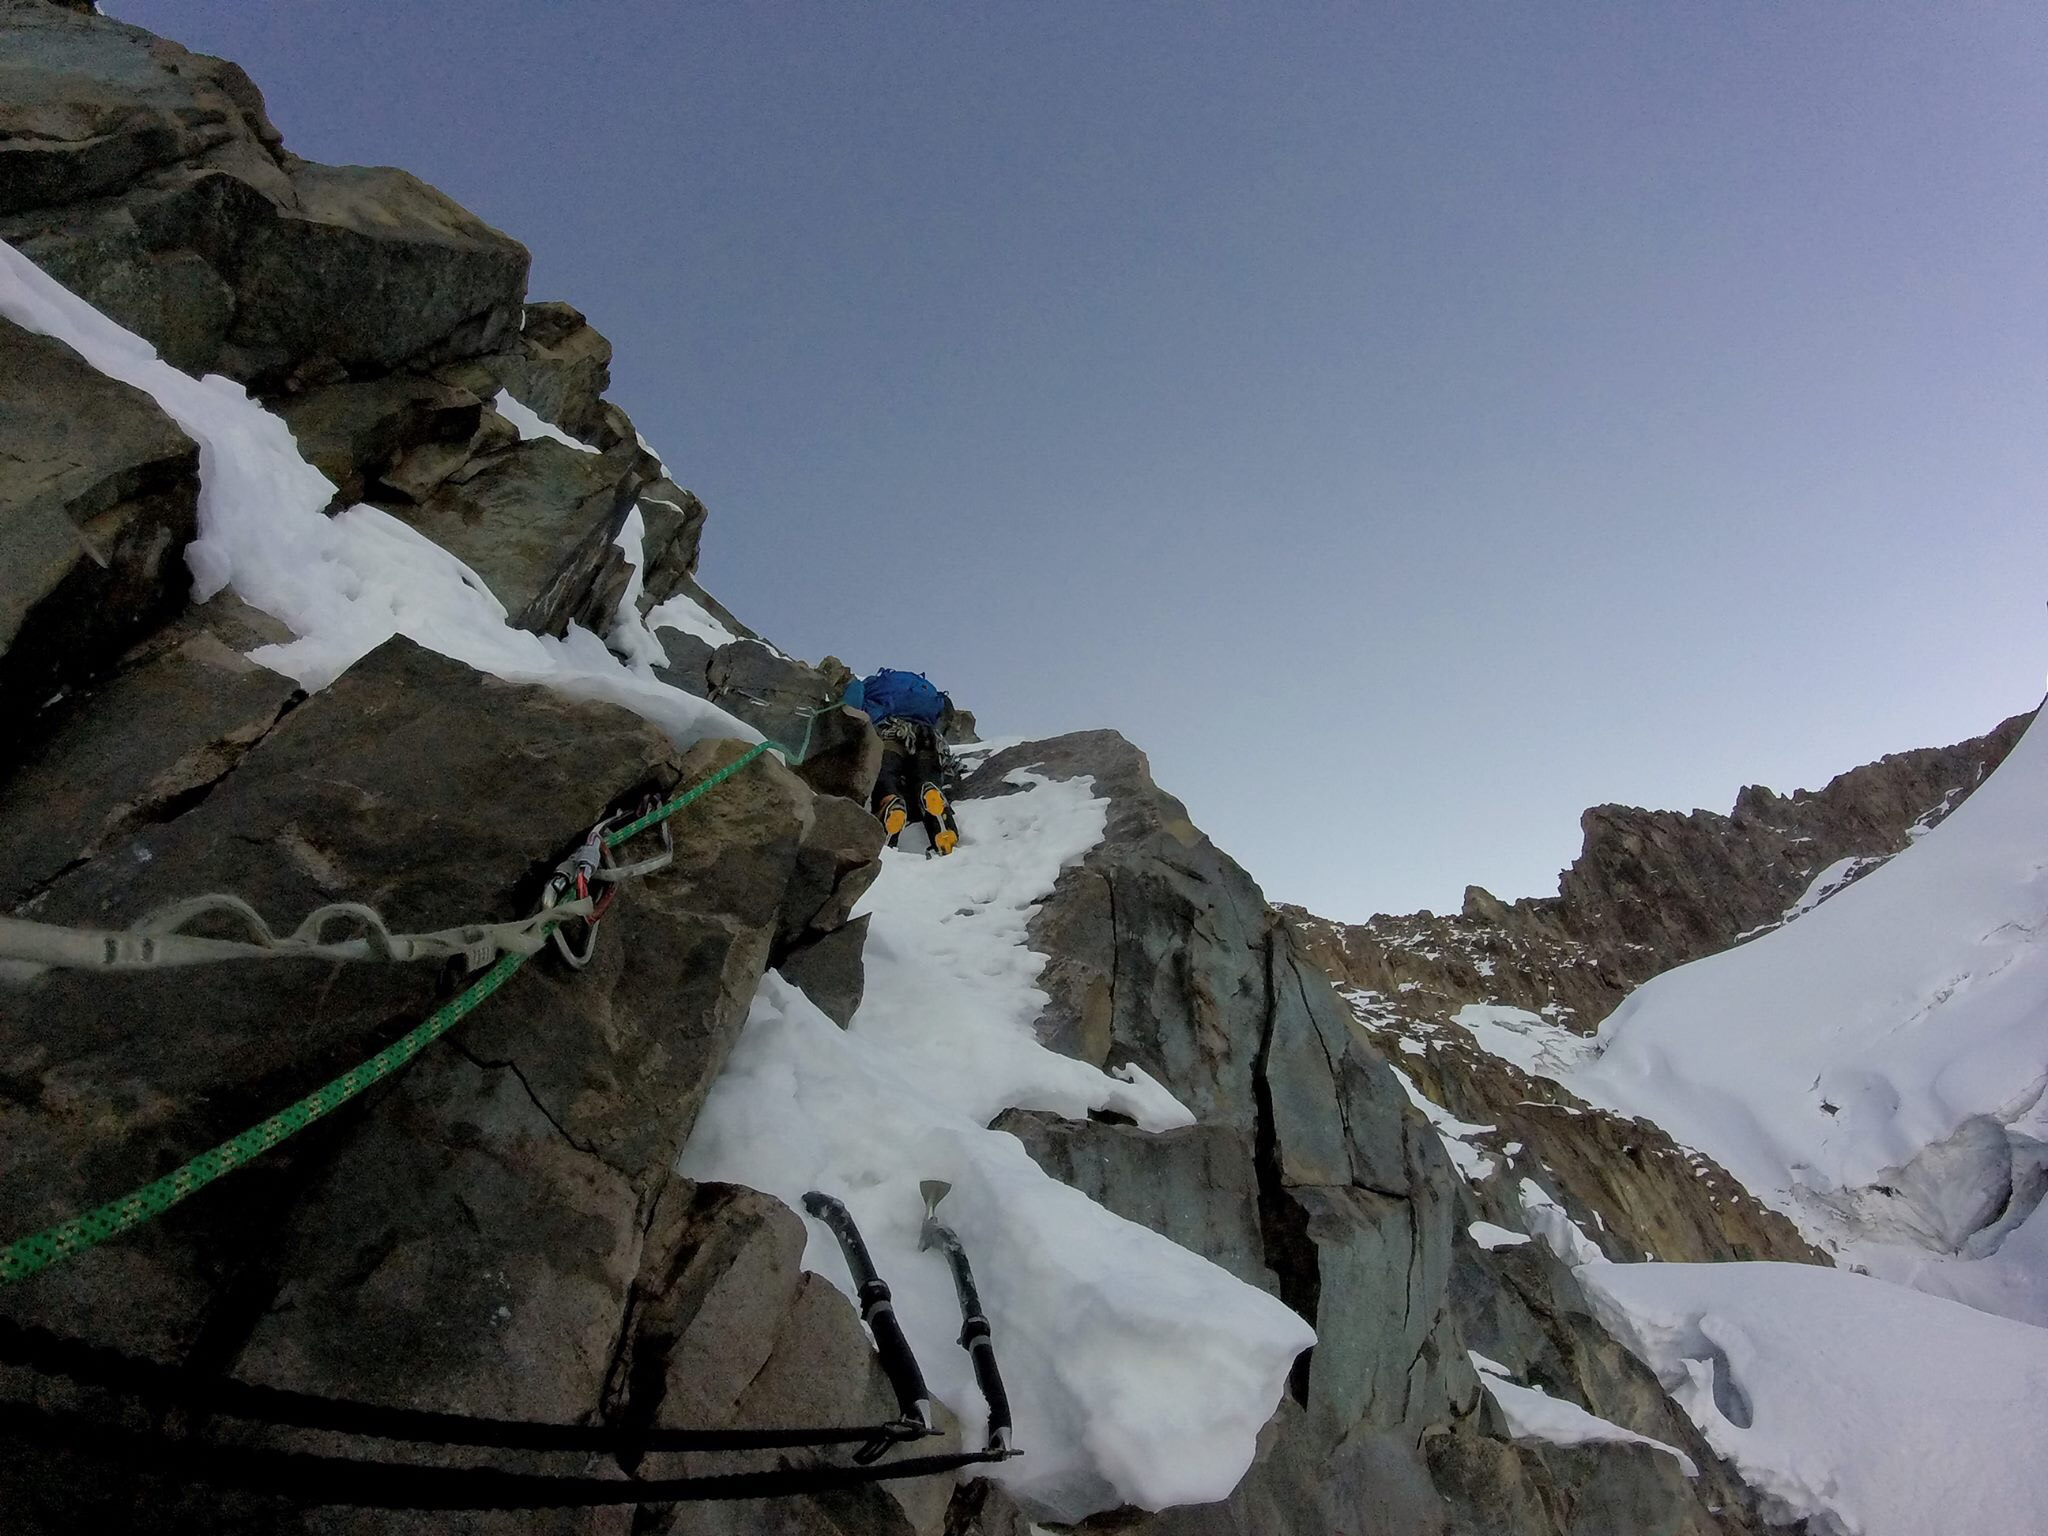 Climbing on the southwest face of the south peak of Nevado Chicón.